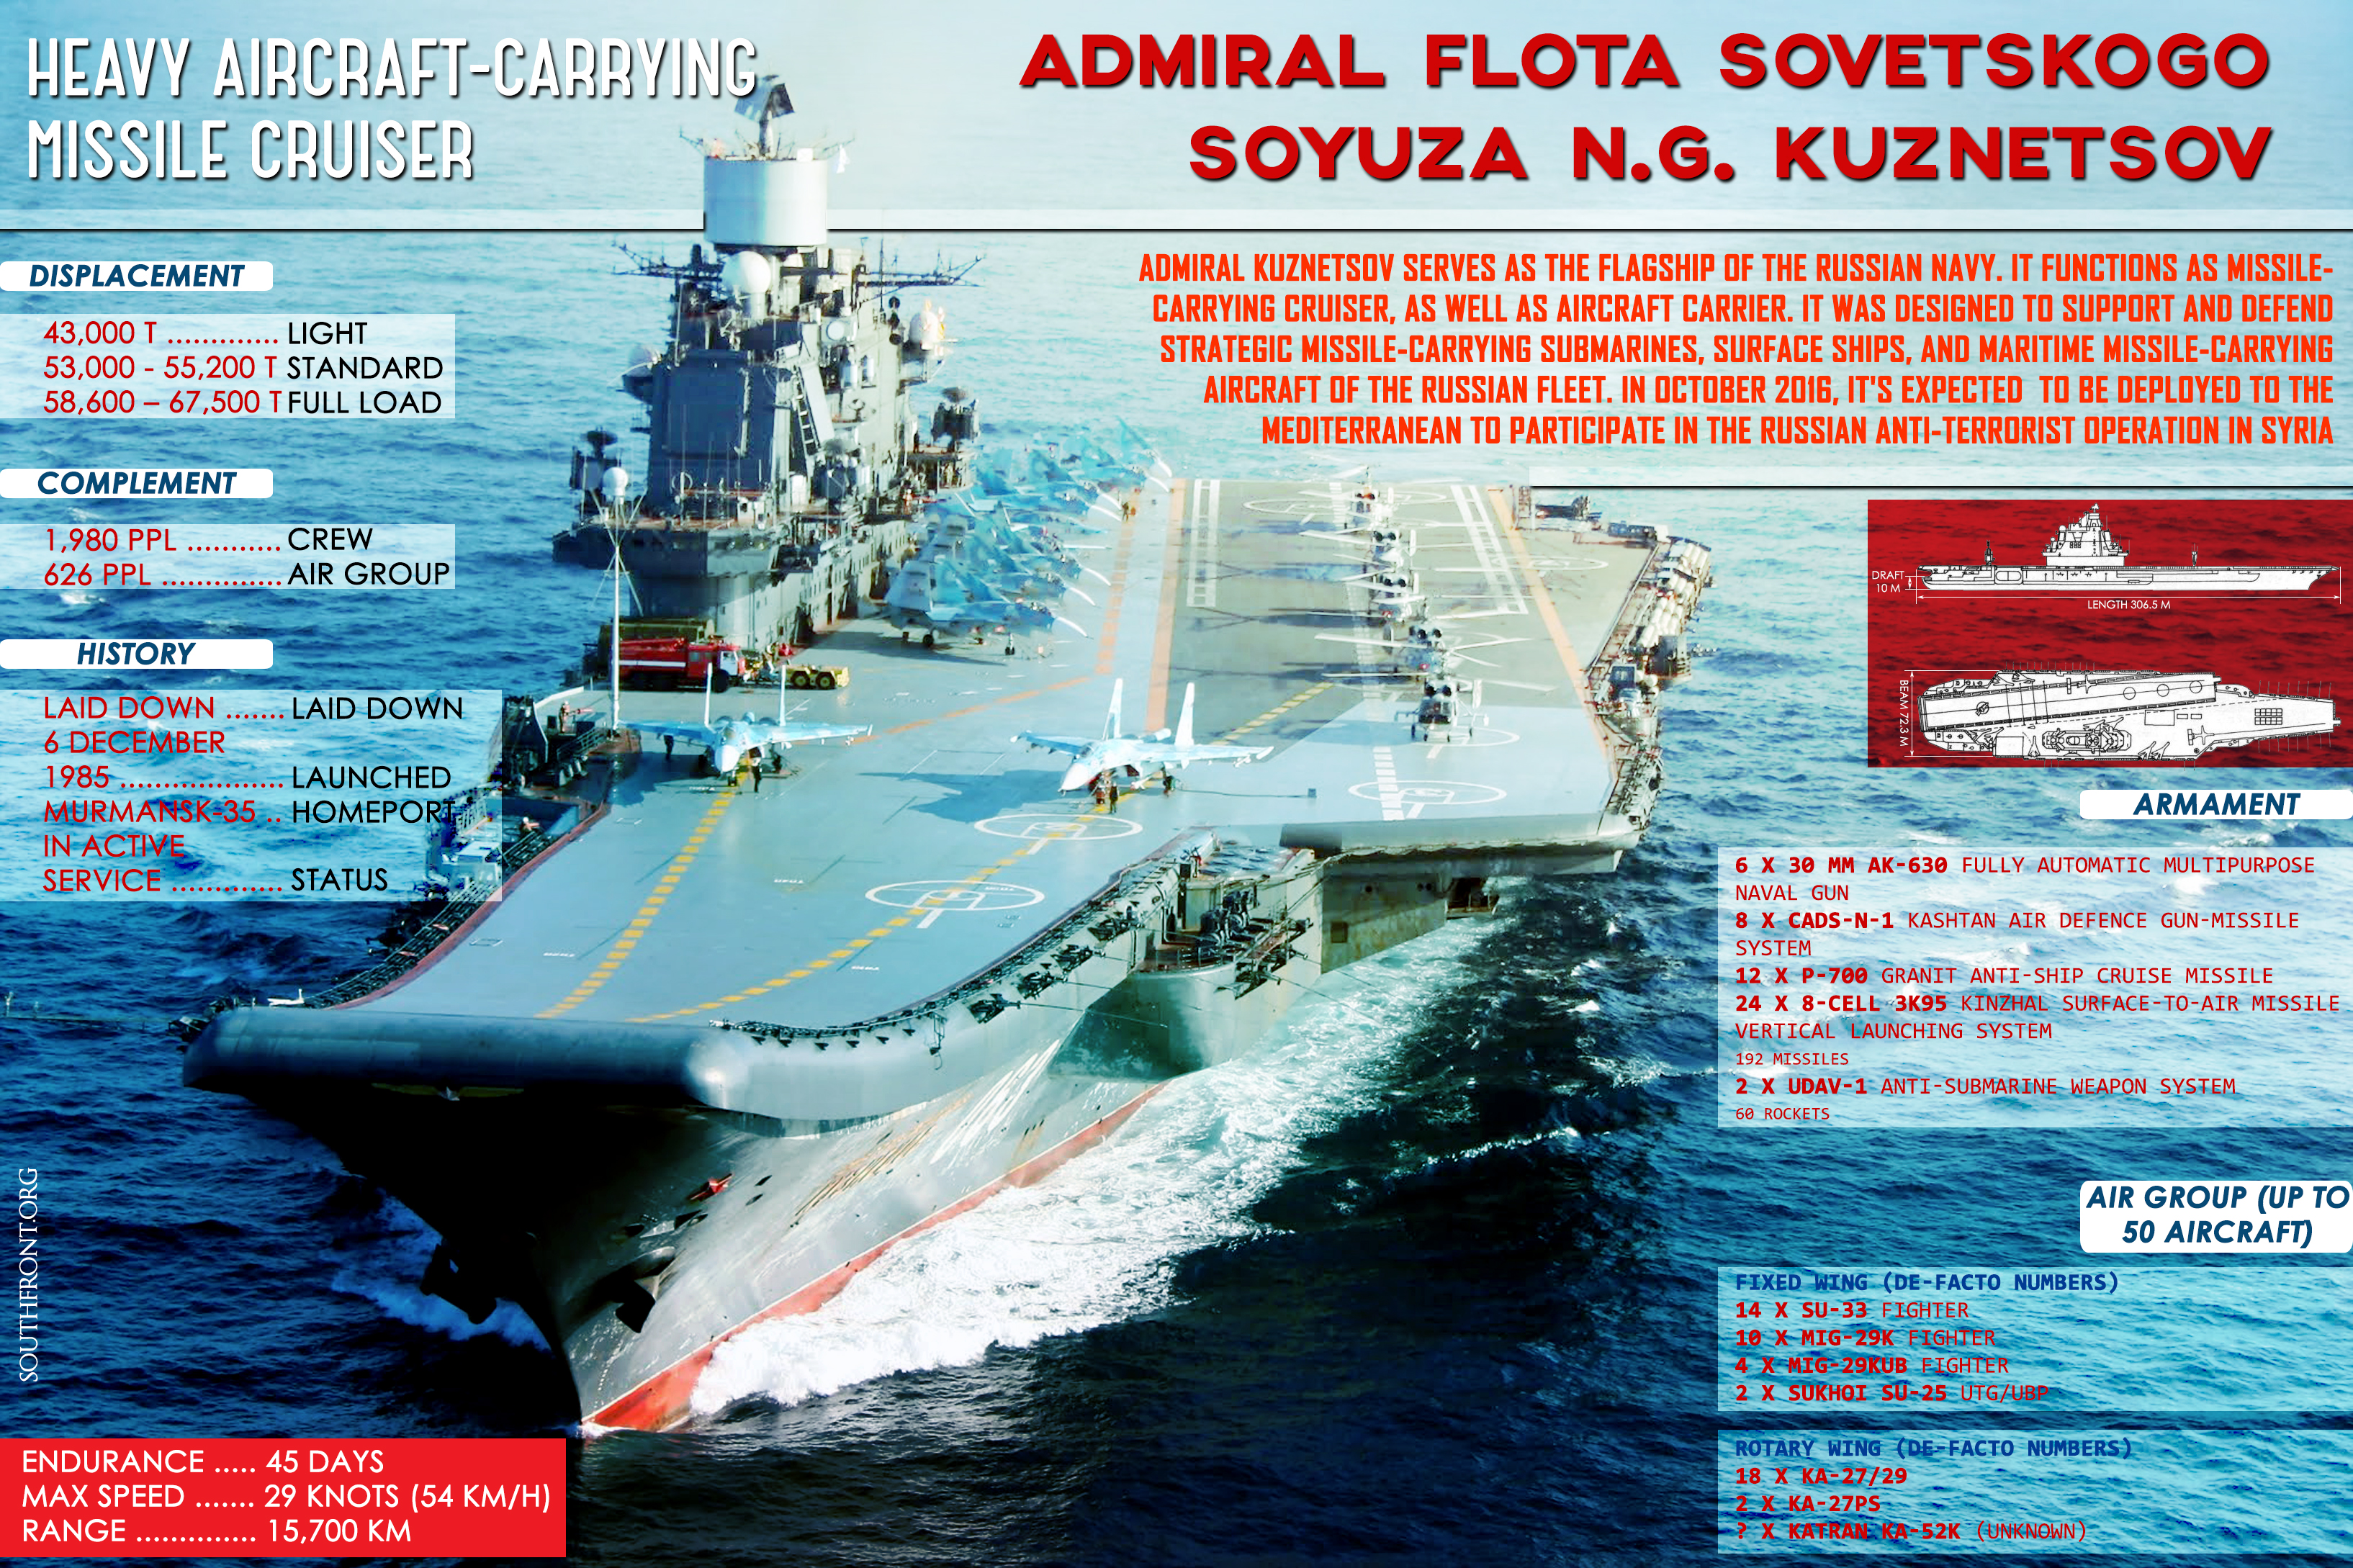 Heavy AircraftCarrying Missile Cruiser Admiral Kuznetsov - Us aircraft carriers deployment map